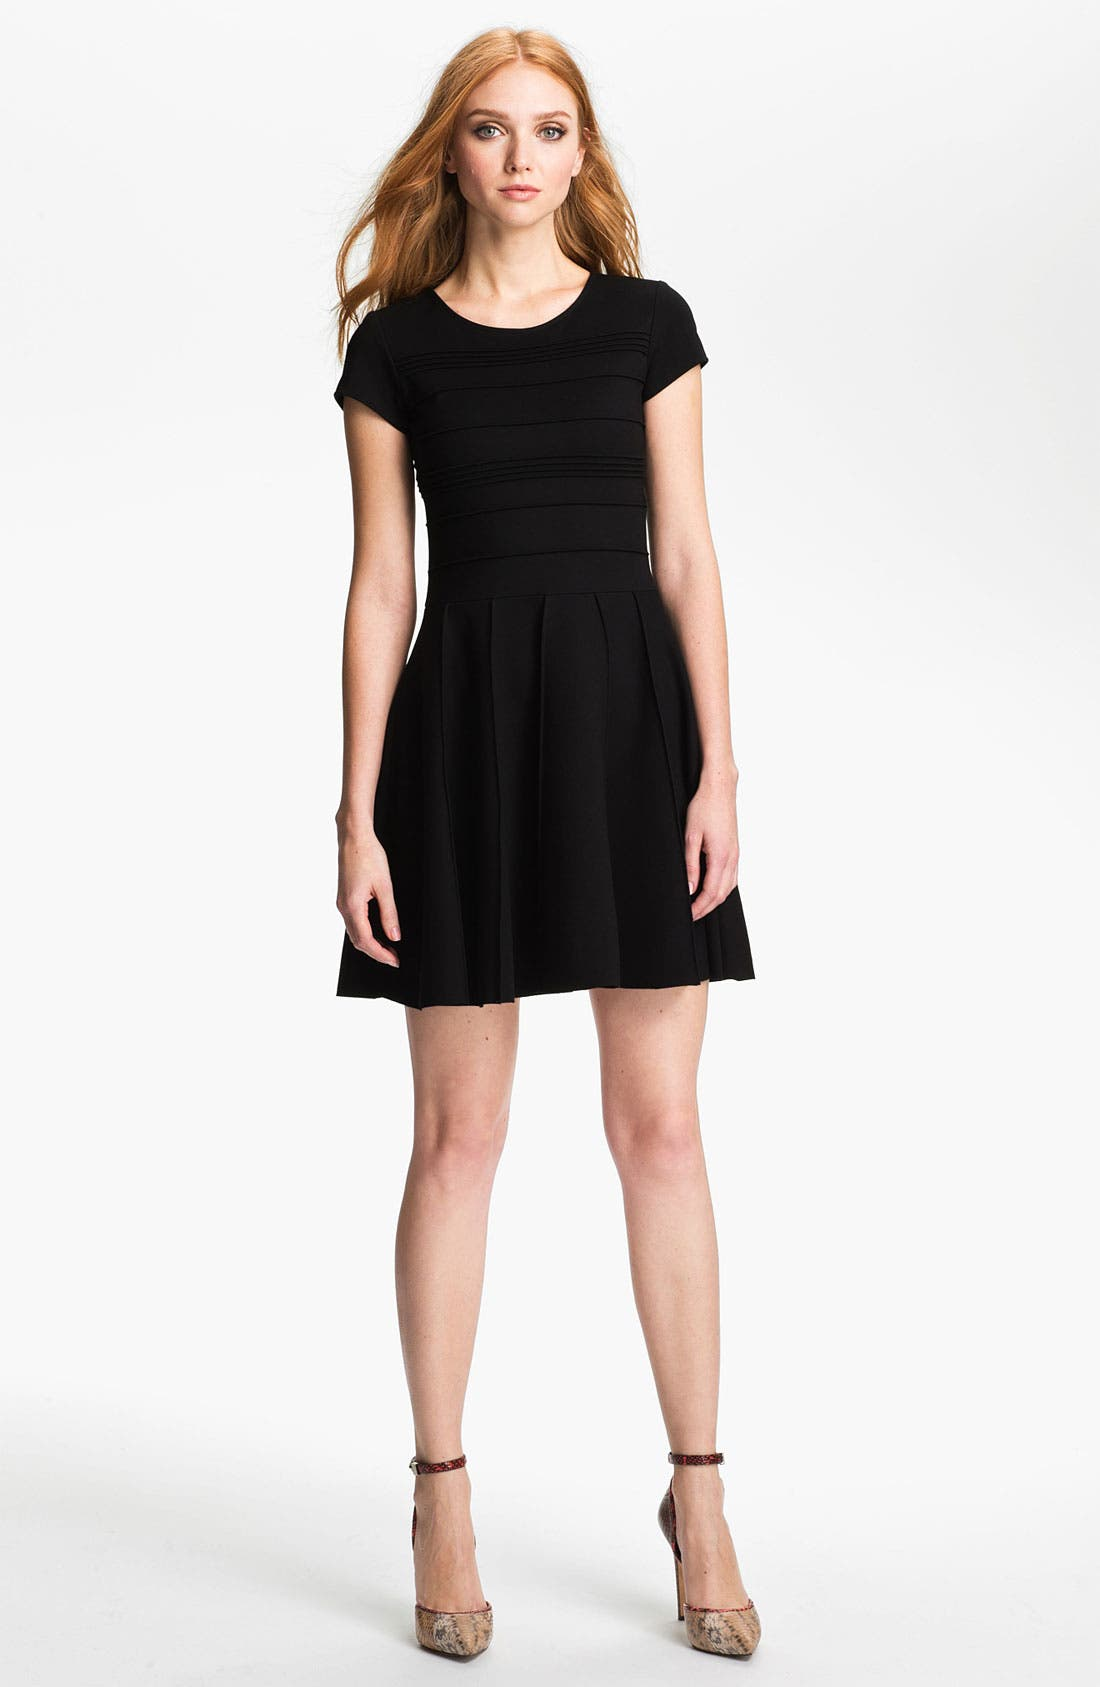 Alternate Image 1 Selected - Parker 'Tara' Stretch Fit & Flare Dress